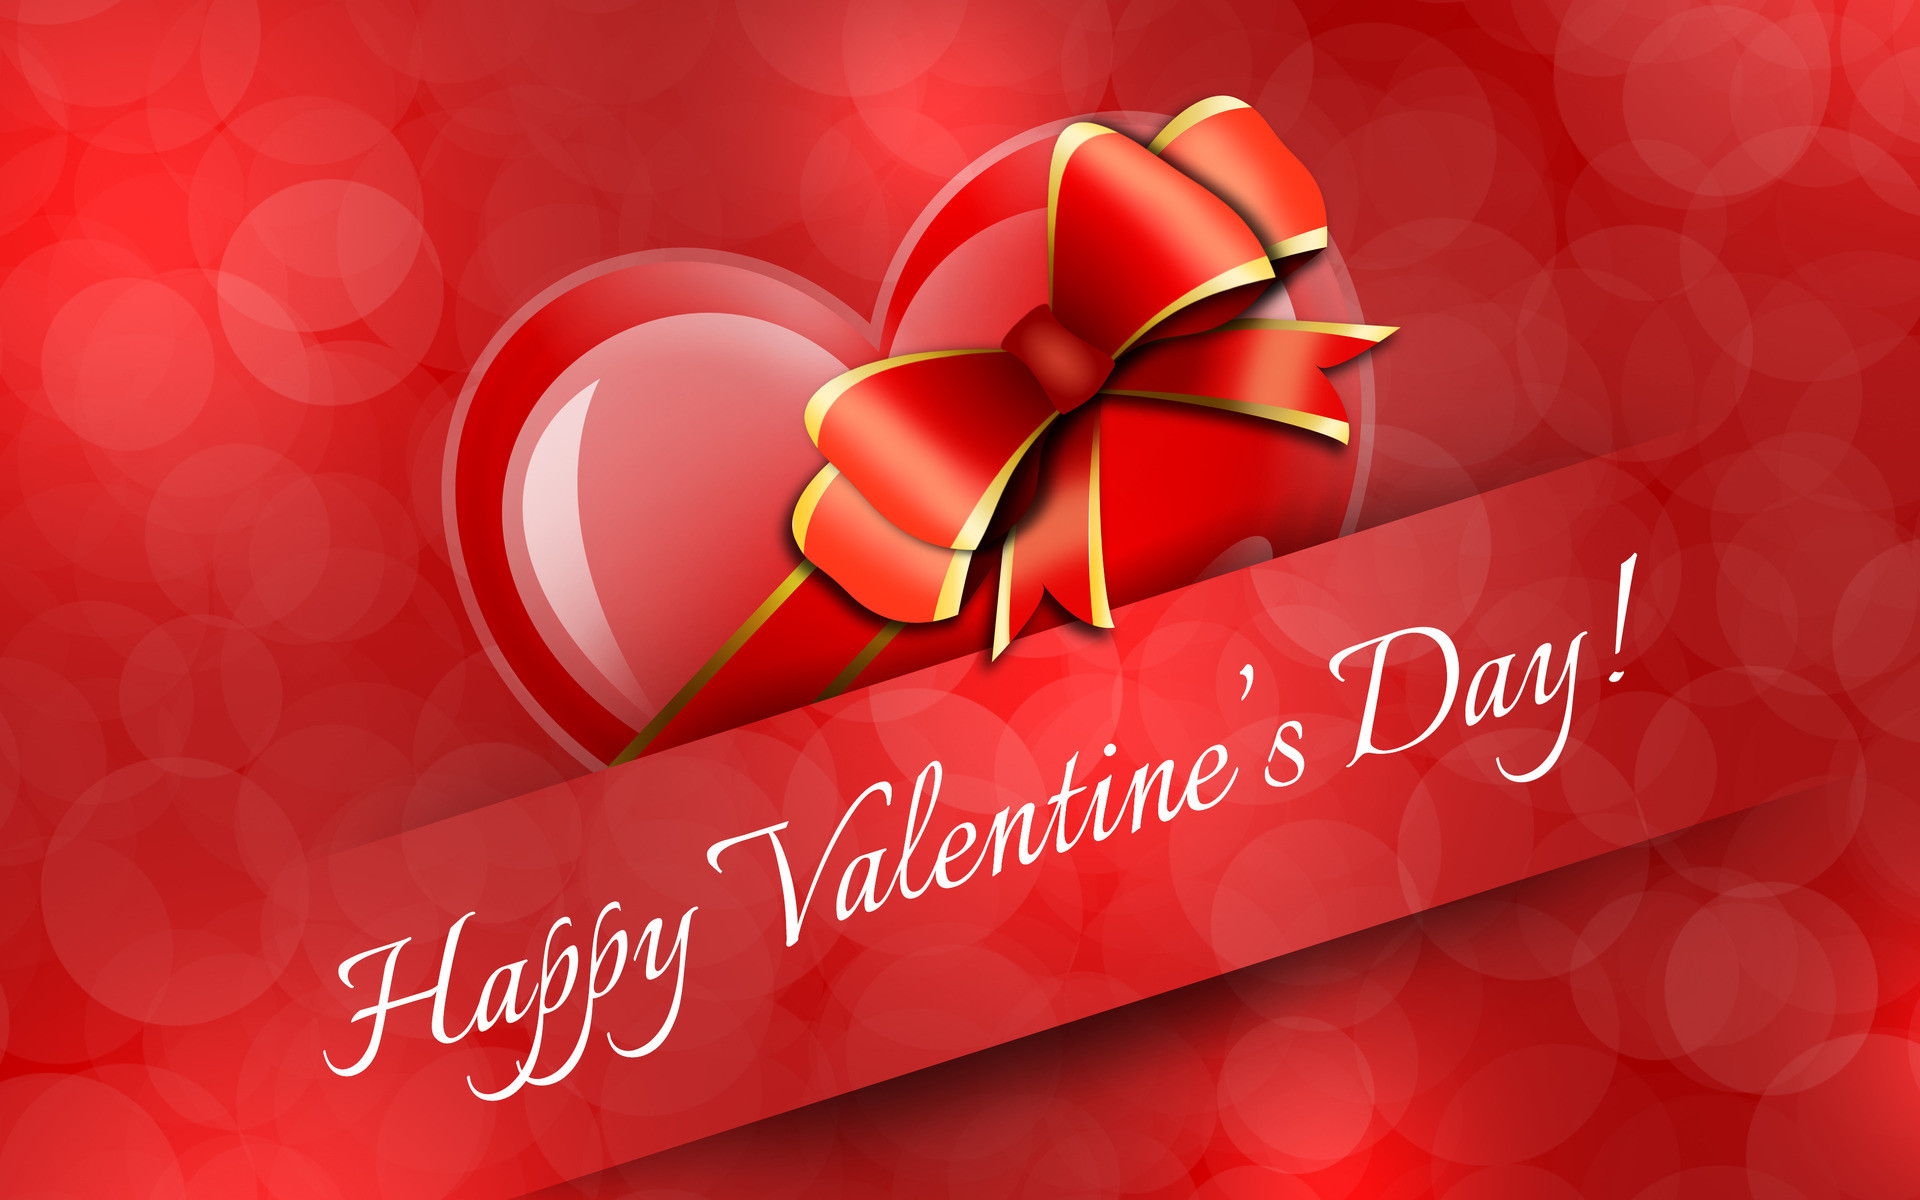 … valentine day wallpaper 2017 hd …